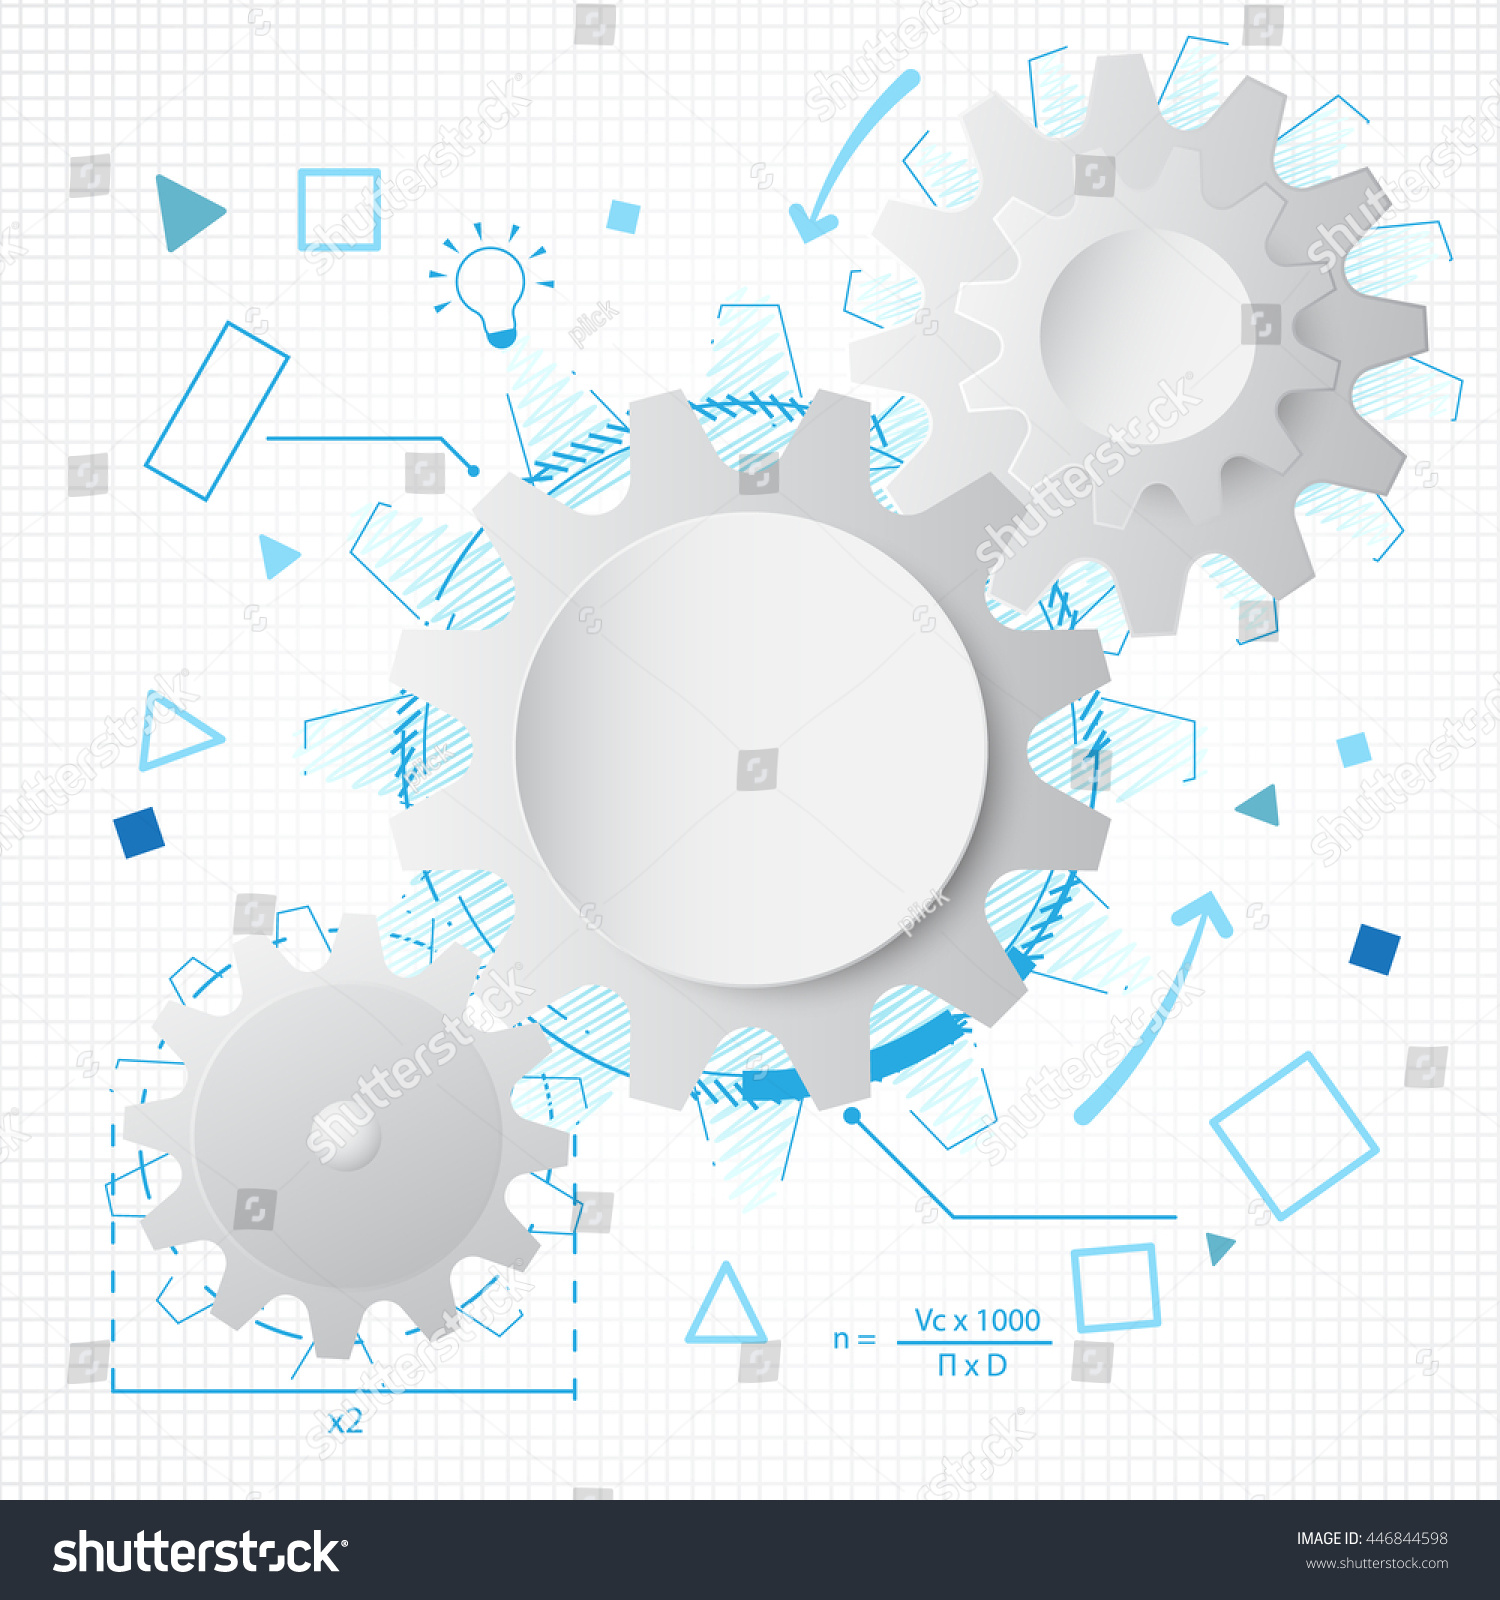 Abstract white gears wheel technology background stock vector abstract white gears wheel technology background with blue lines draw invention concept design malvernweather Choice Image